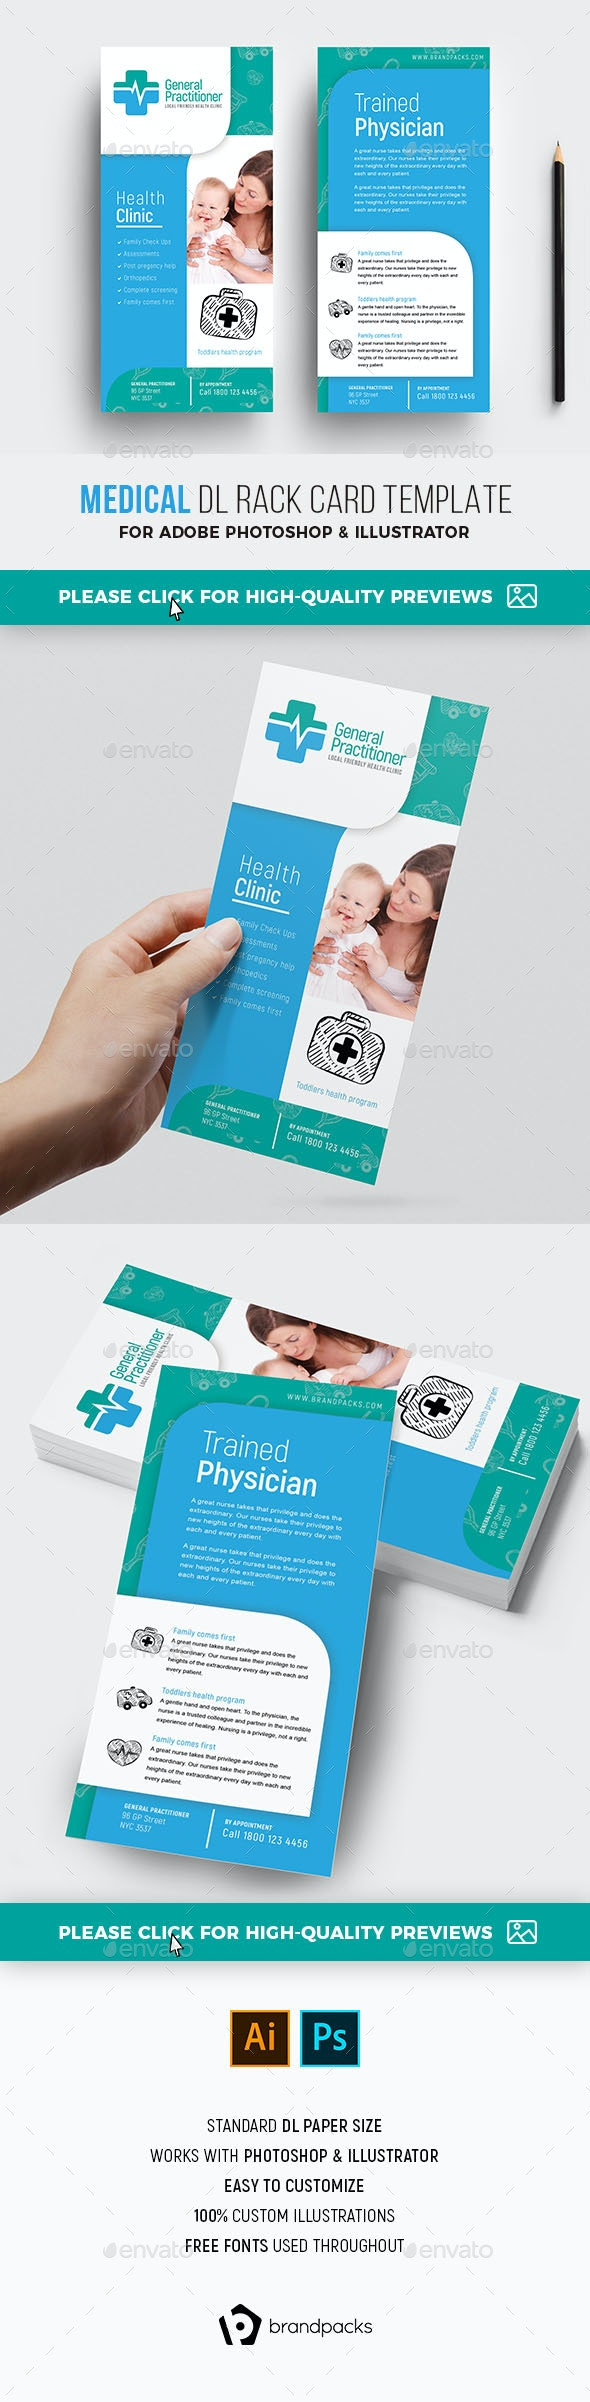 Medical DL Rack Card Template - Corporate Flyers